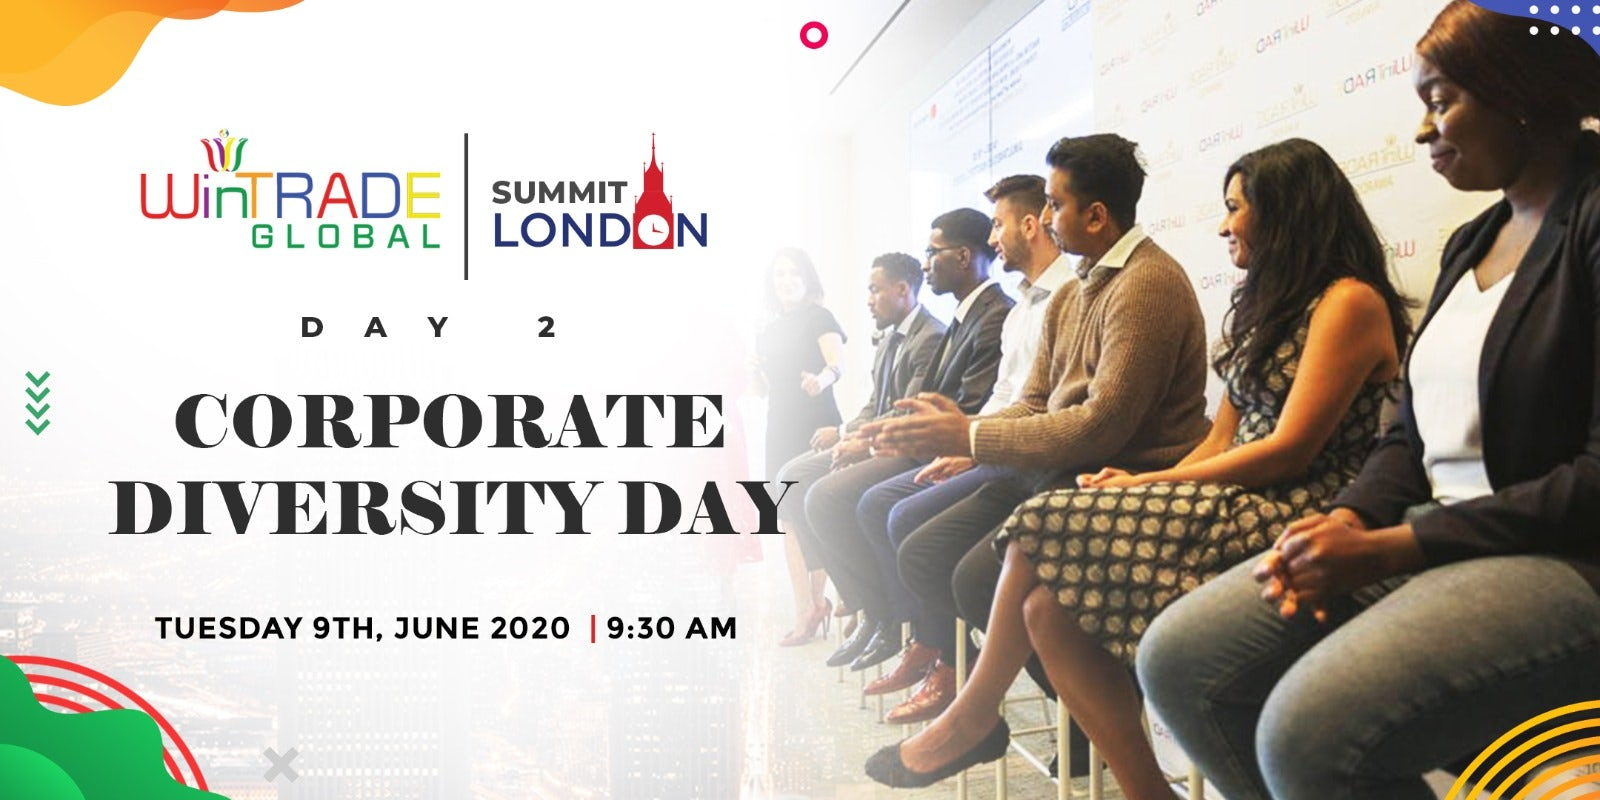 WinTrade Global Corporate Diversity Day